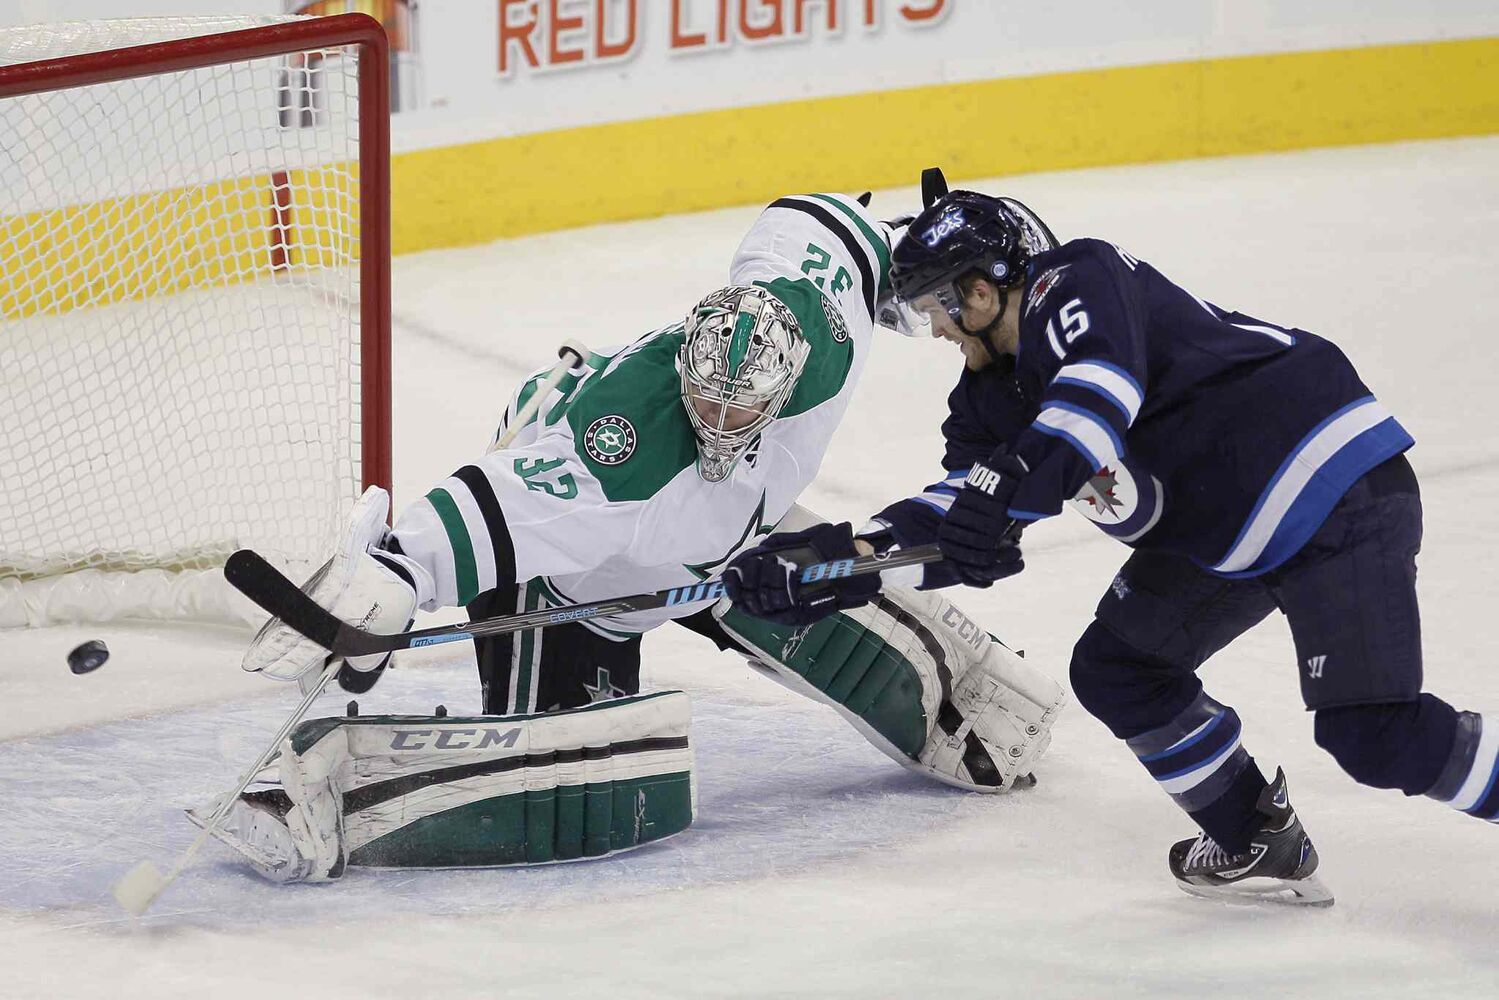 Winnipeg Jets forward Matt Halischuk (right) scores on Dallas Stars goaltender Kari Lehtonen during the first period.